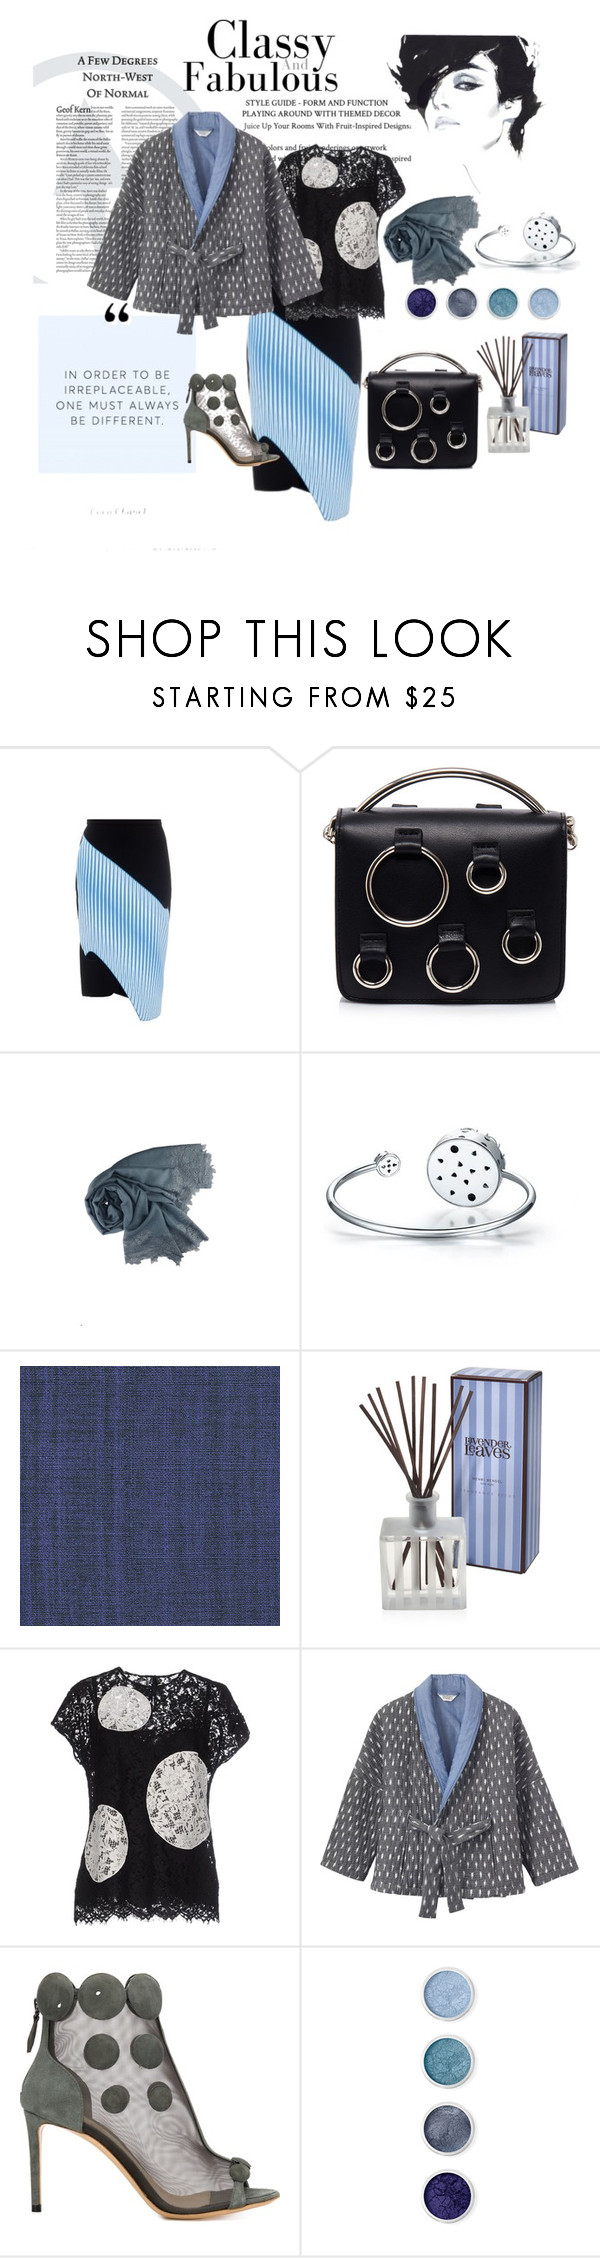 """""""Quilted Kimono Jacket. Always be different"""" by vittorio-1 ❤ liked on Polyvore featuring Dion Lee, MSGM, Élitis, Henri Bendel, Dolce&Gabbana, Toast, Nicholas Kirkwood and Terre Mère"""